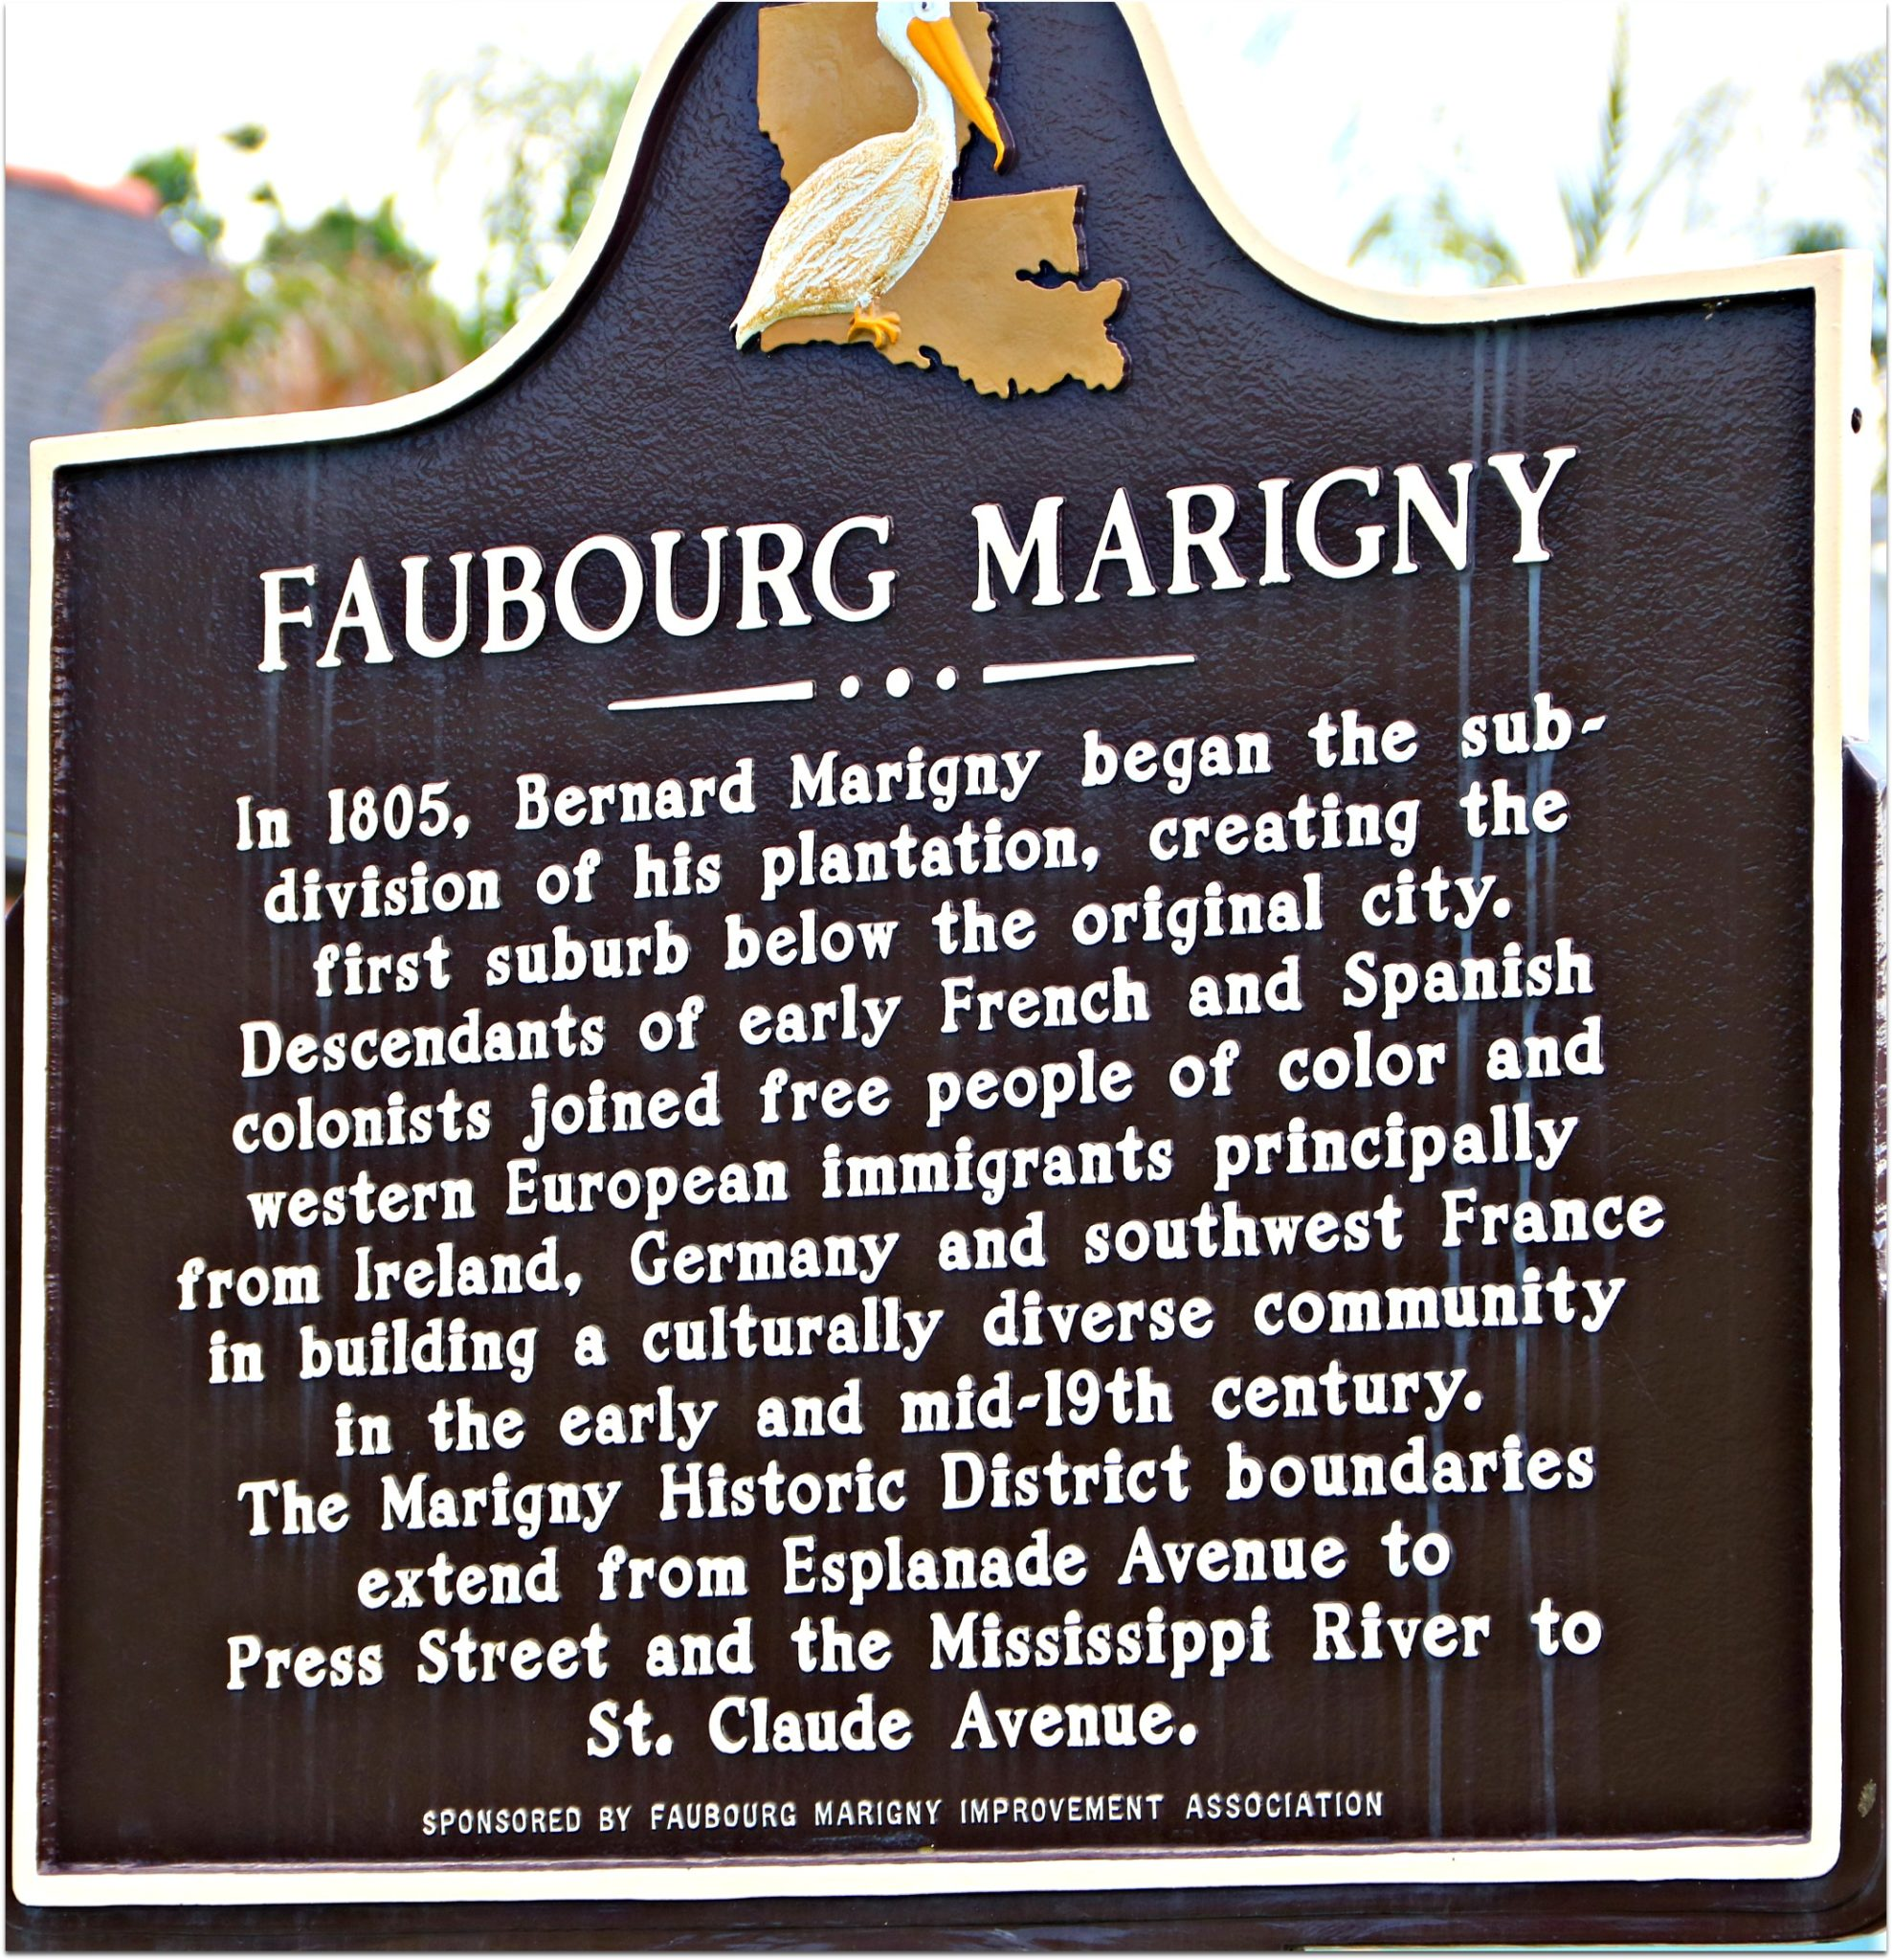 Faubourg Marigny Neighborhood in New Olreans